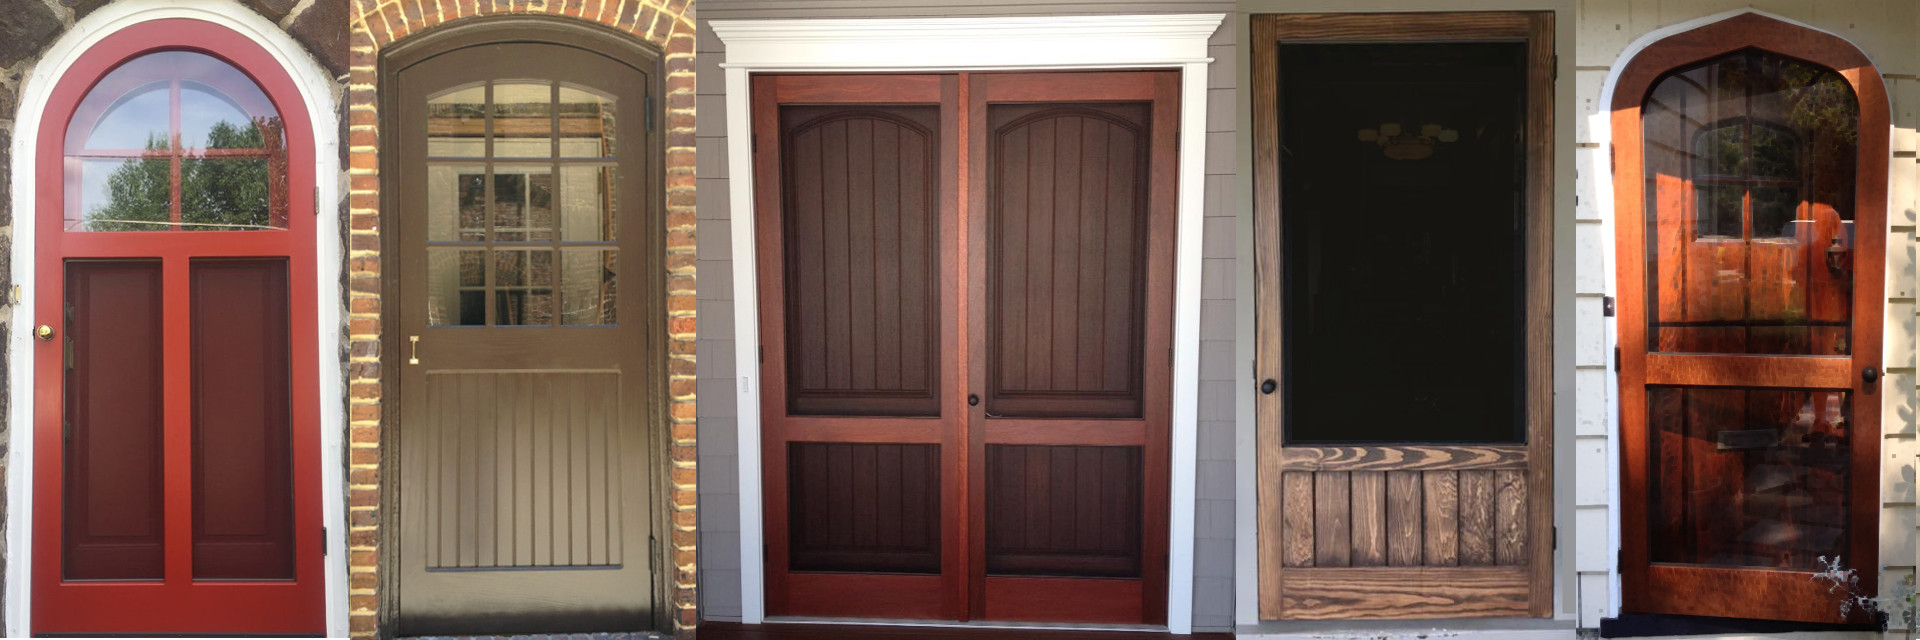 wood storm doors from Victoriana East